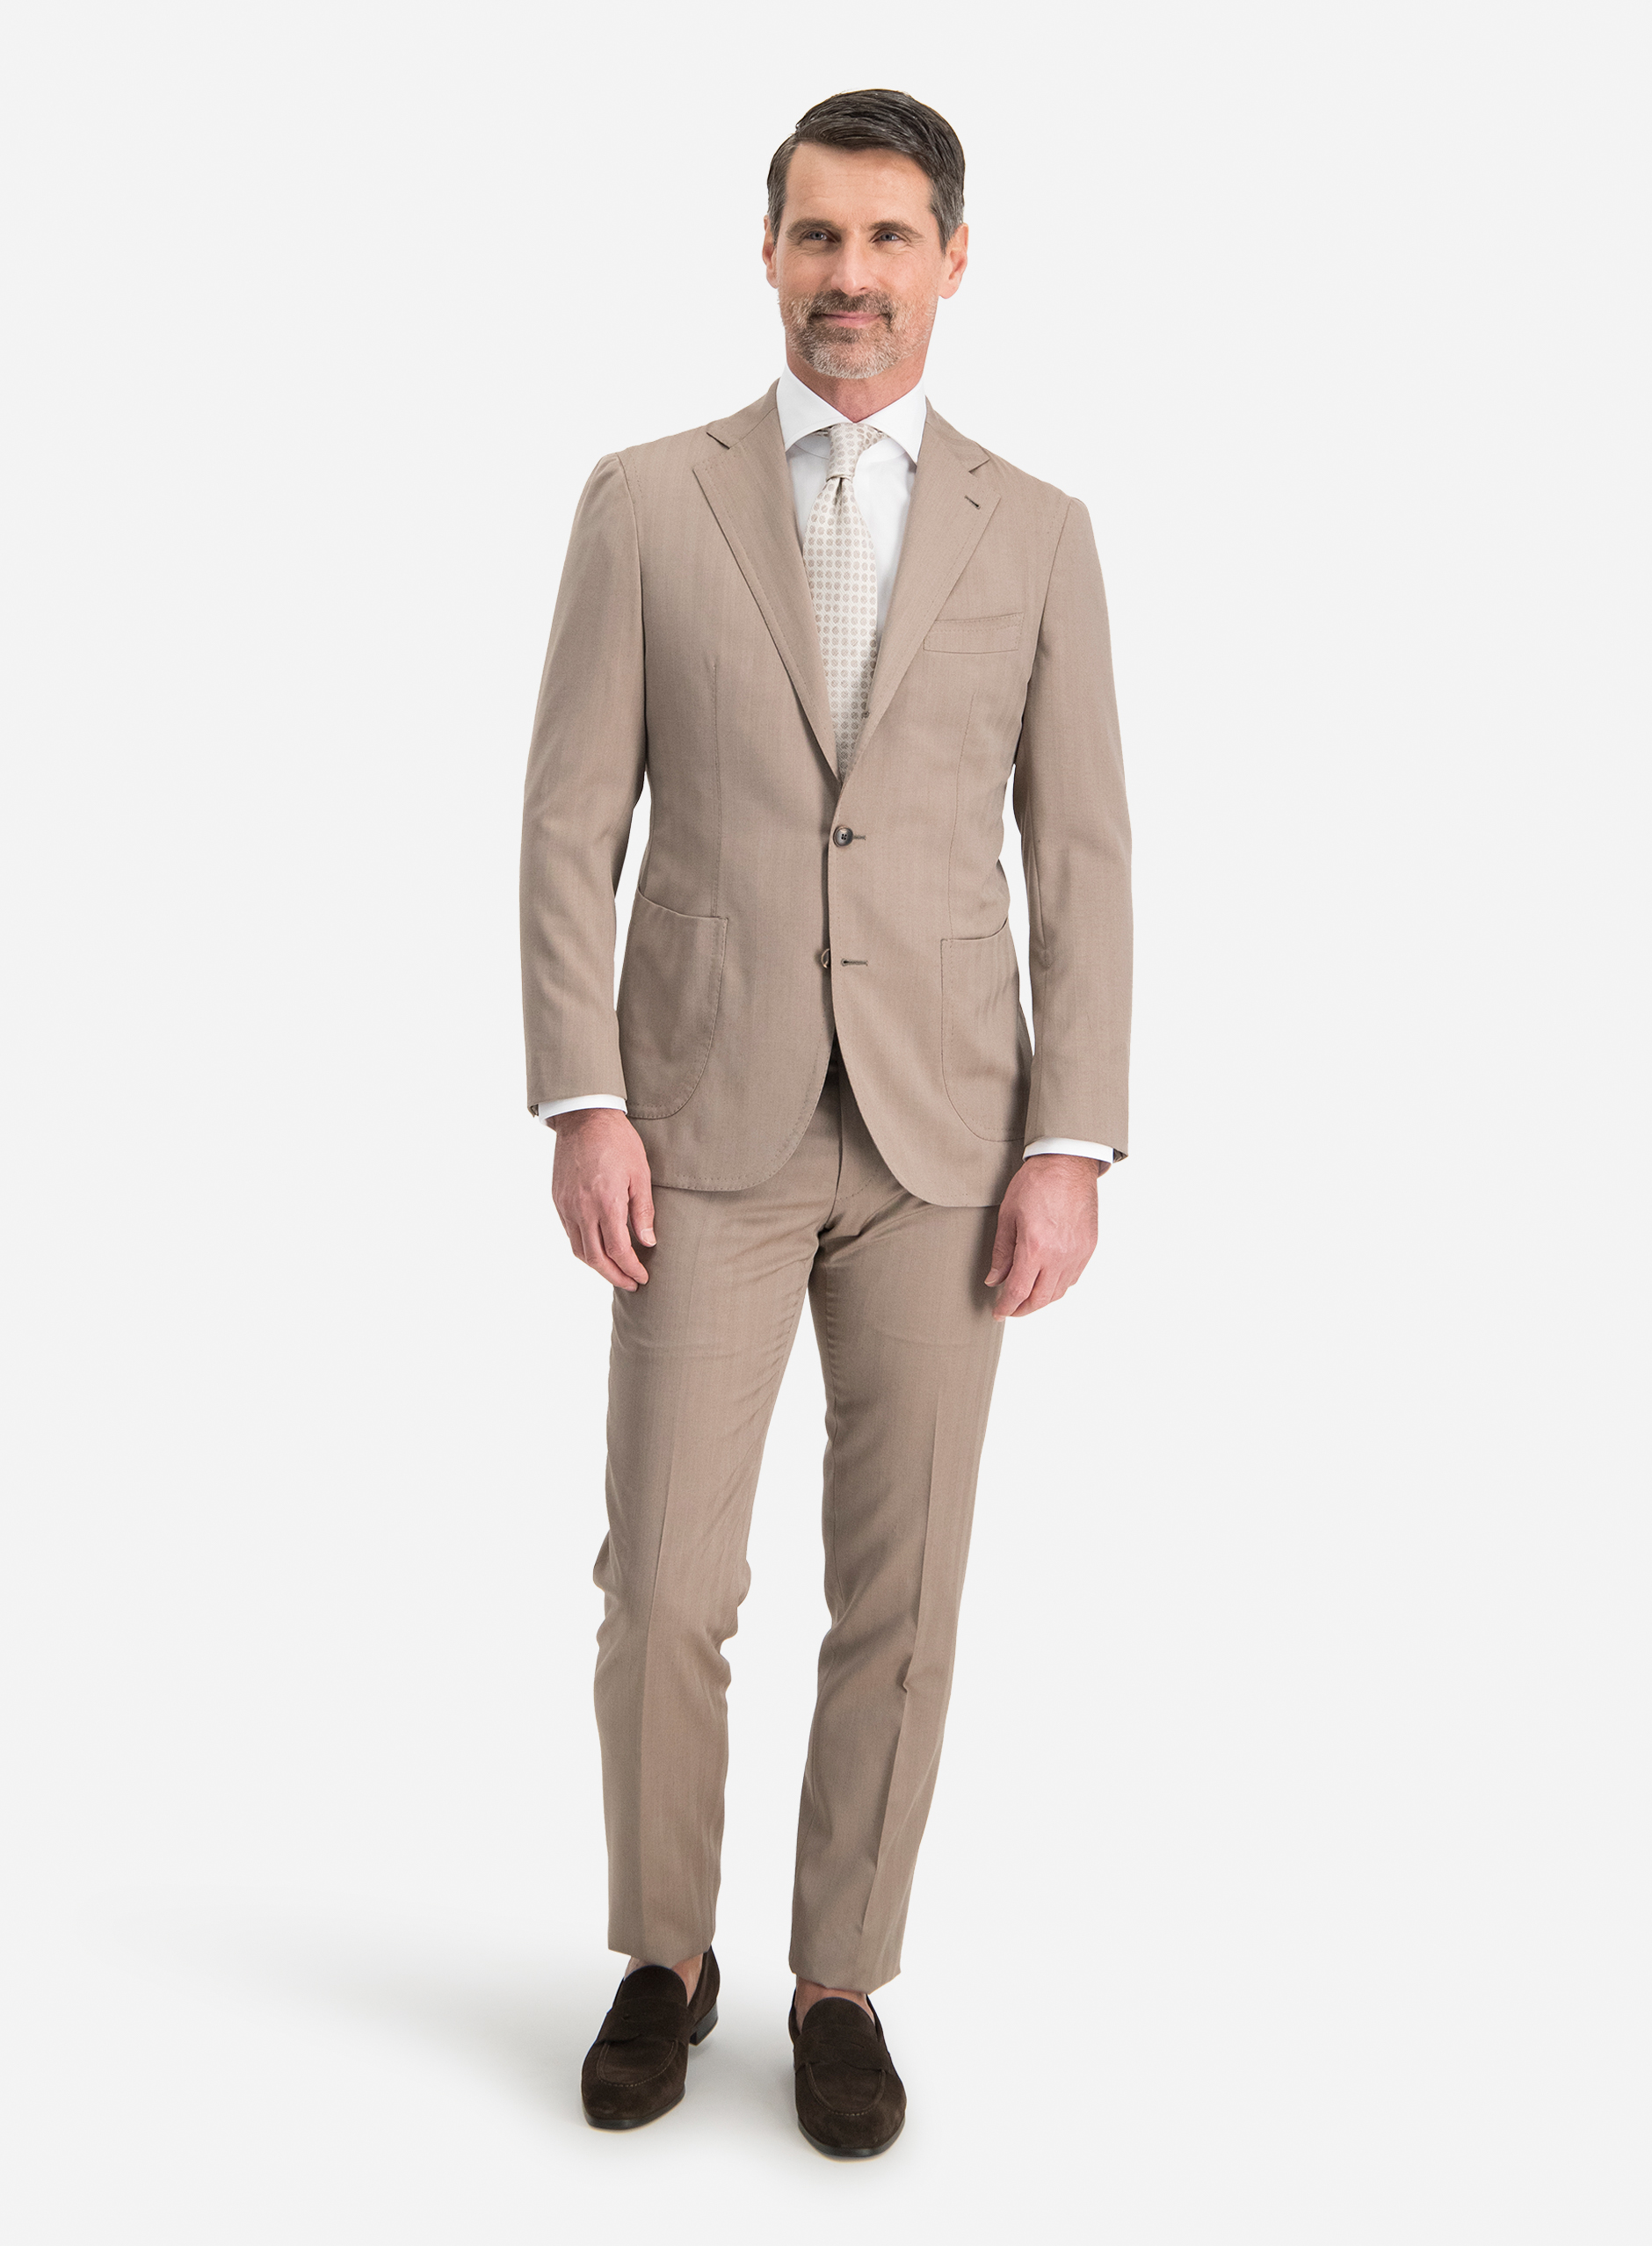 Timeless business suit